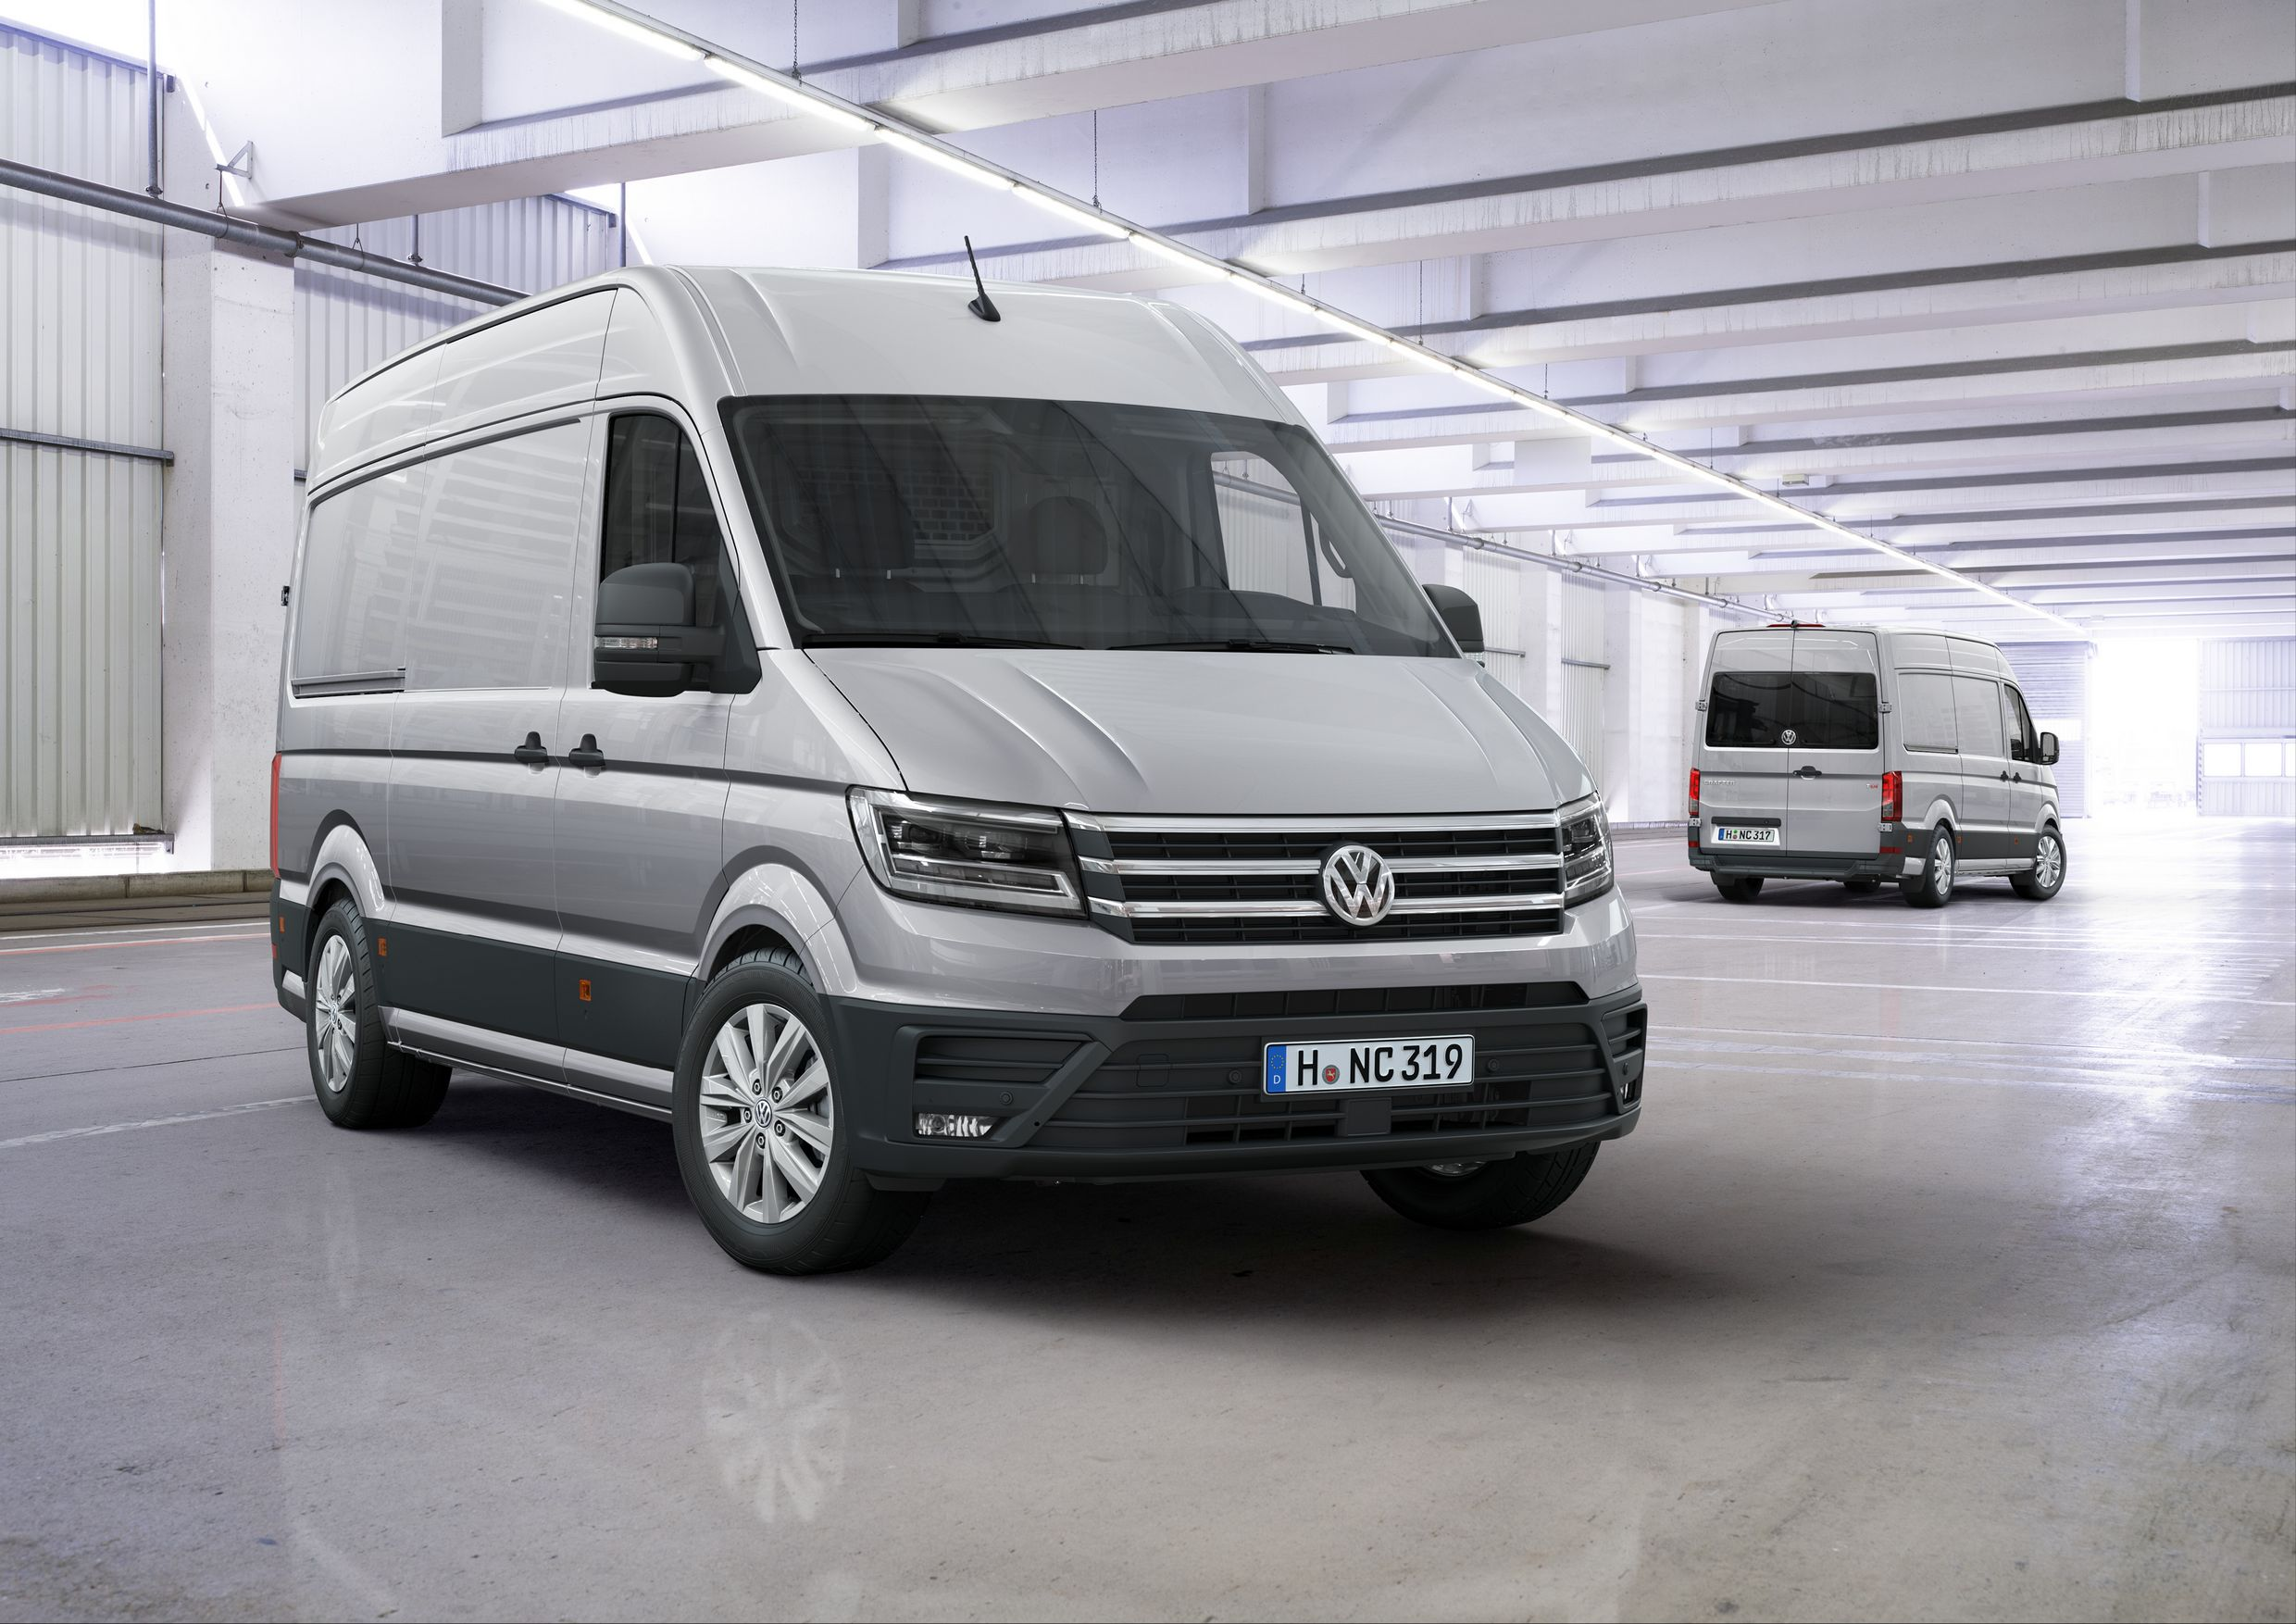 ... volkswagen-crafter-debuts-with-fwd-option-and-class-leading-features_1